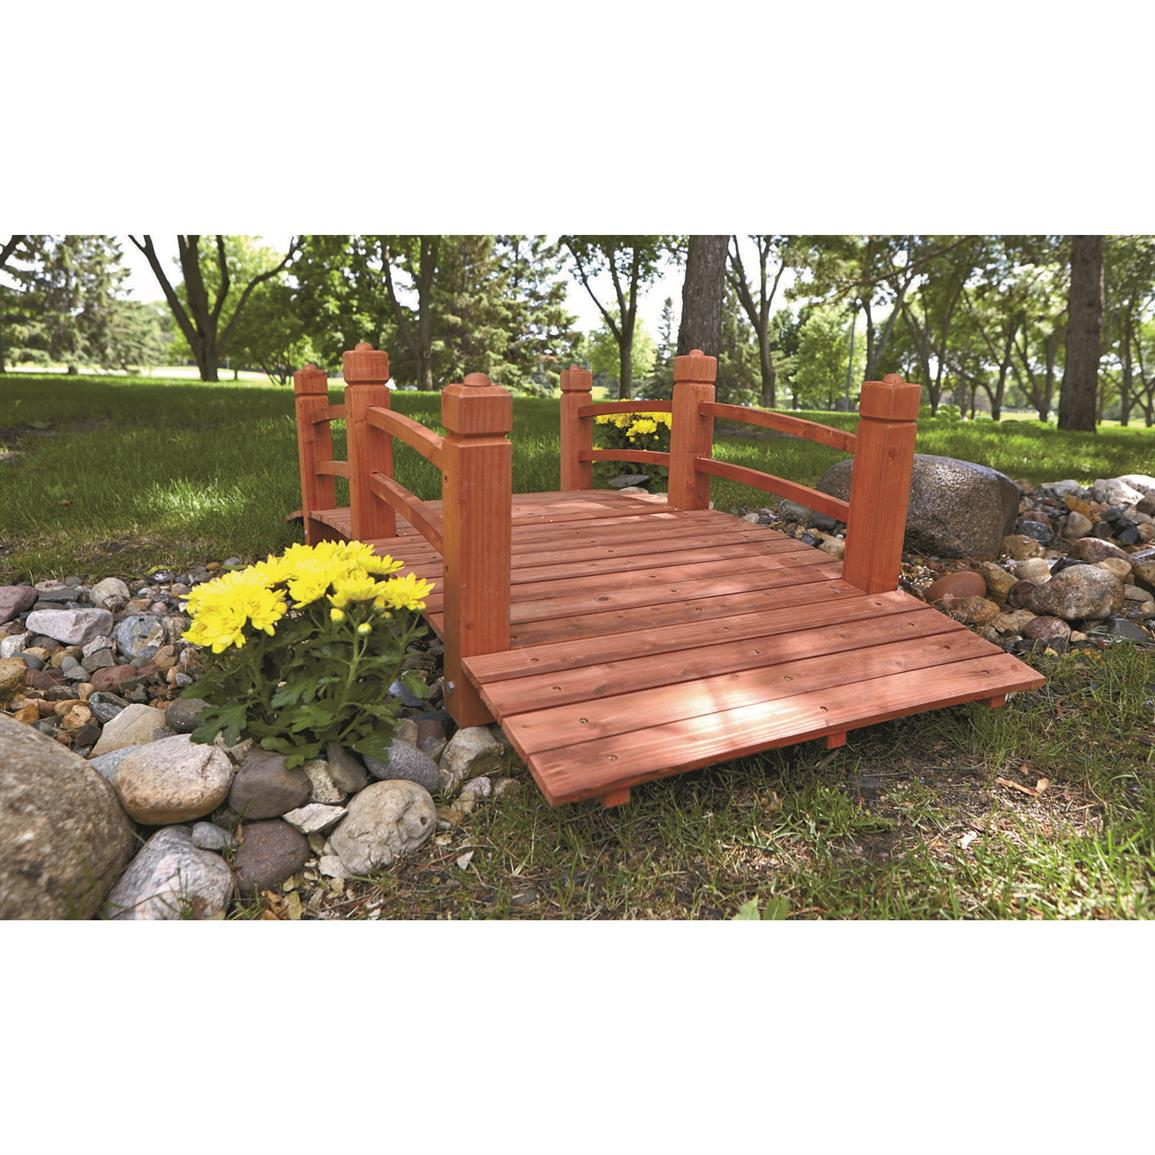 Place it near your garden, over a small creek, or anywhere you need a sturdy, attractive accent.